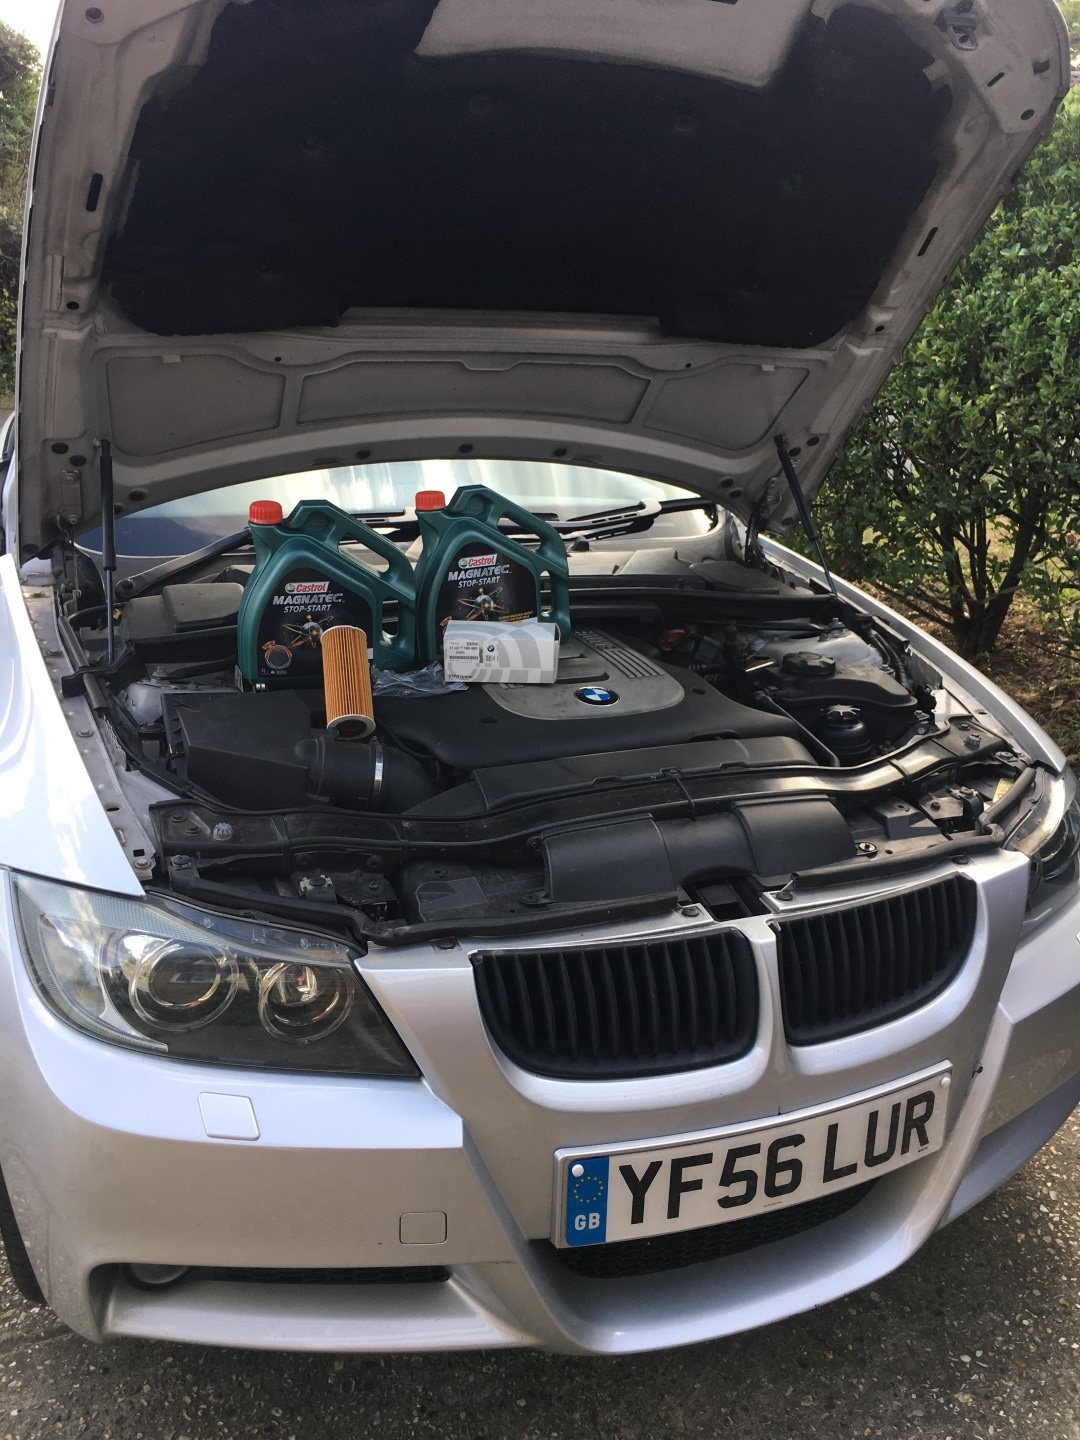 335d with bonnet up and two 4l bottles of Castrol Magnatec 5W-30 LL-04